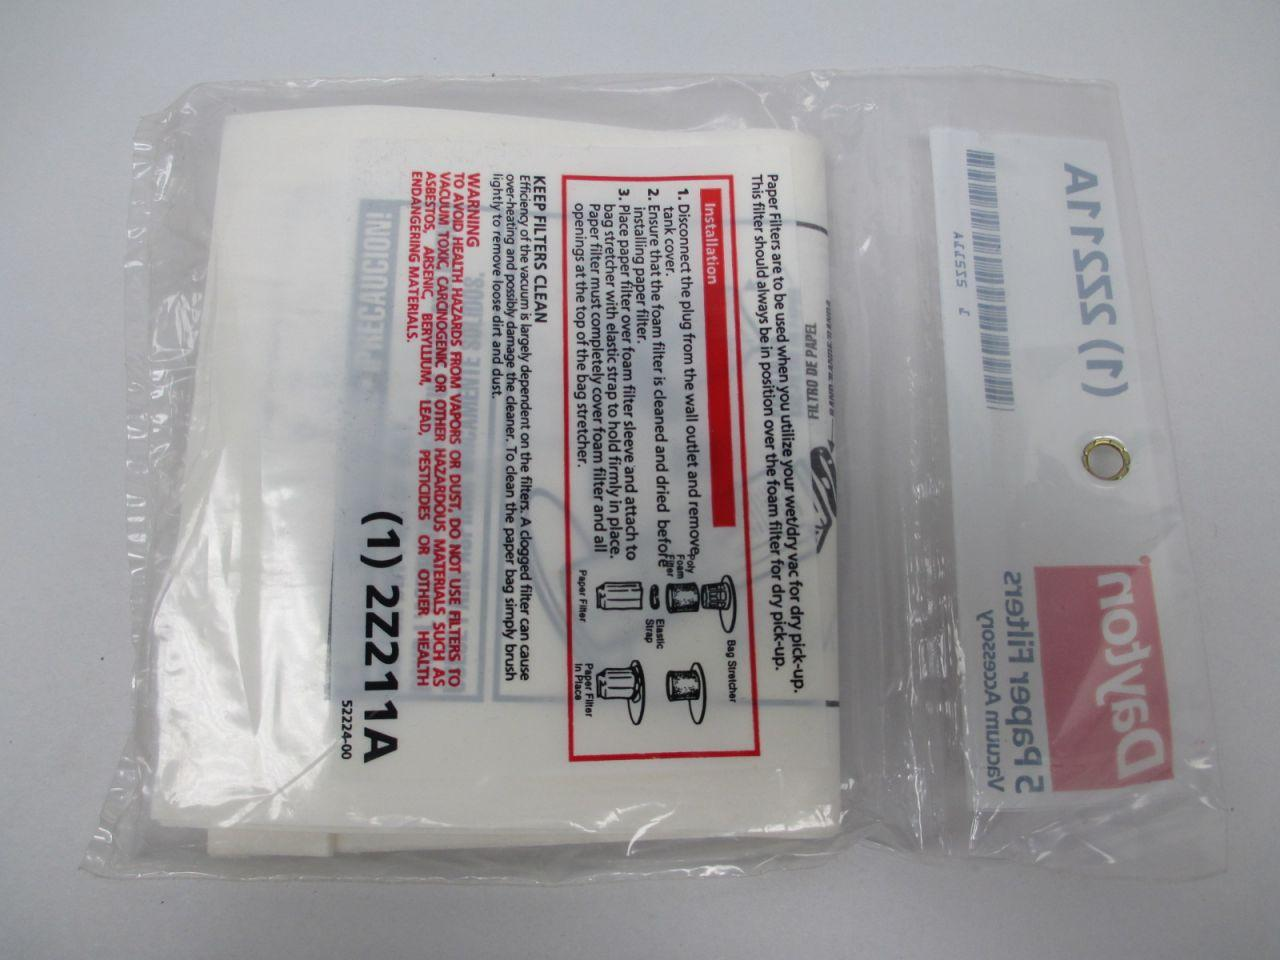 2Z211A Dayton Vacuum Paper Filters Pack of 5